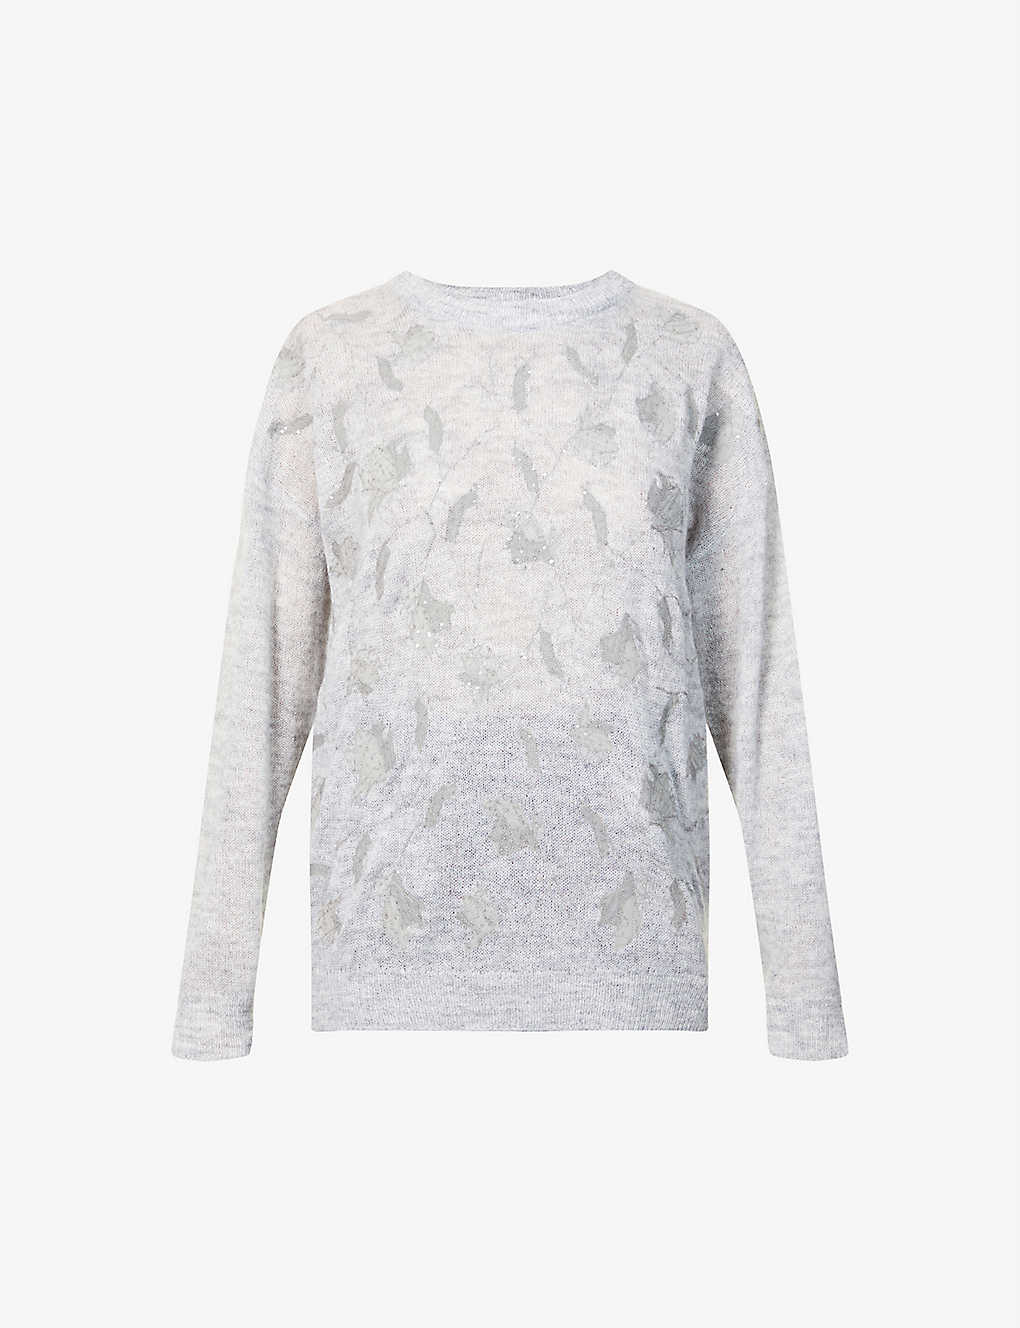 BRUNELLO CUCINELLI: Sequin-embroidered printed knitted jumper